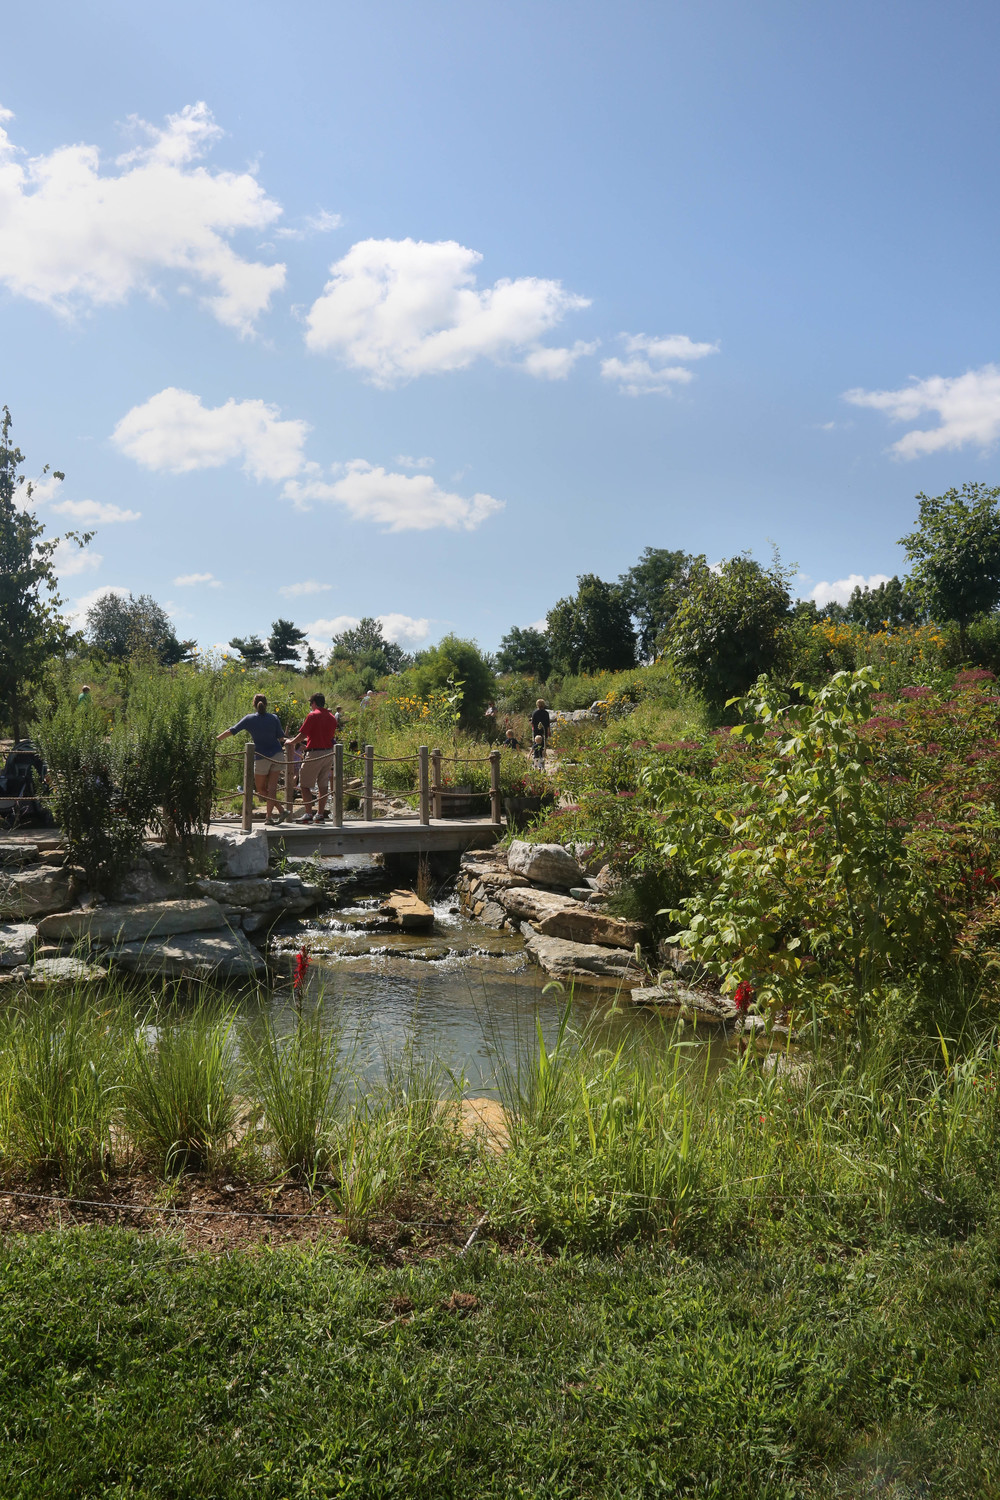 Kentucky Children's Garden